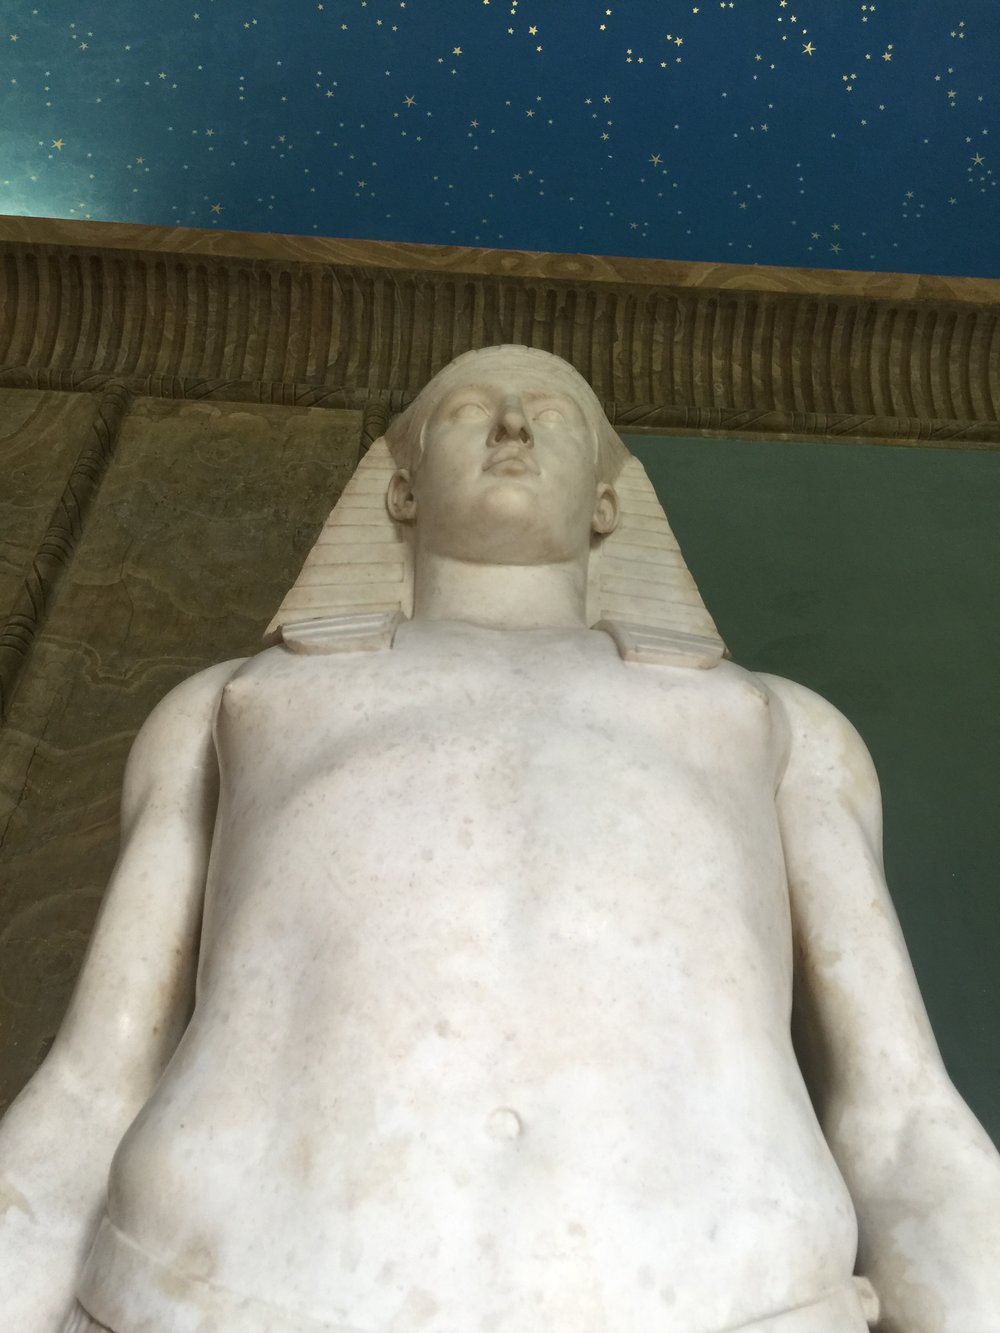 Statue of Osiris-Antinous, 131-8 BC, from Hadrian's Villa, Tivoli. Hadrian's lover Antinous was deified by the emperor after his death — hence the hyphen linking him to Osiris, the Egyptian god of the afterlife.